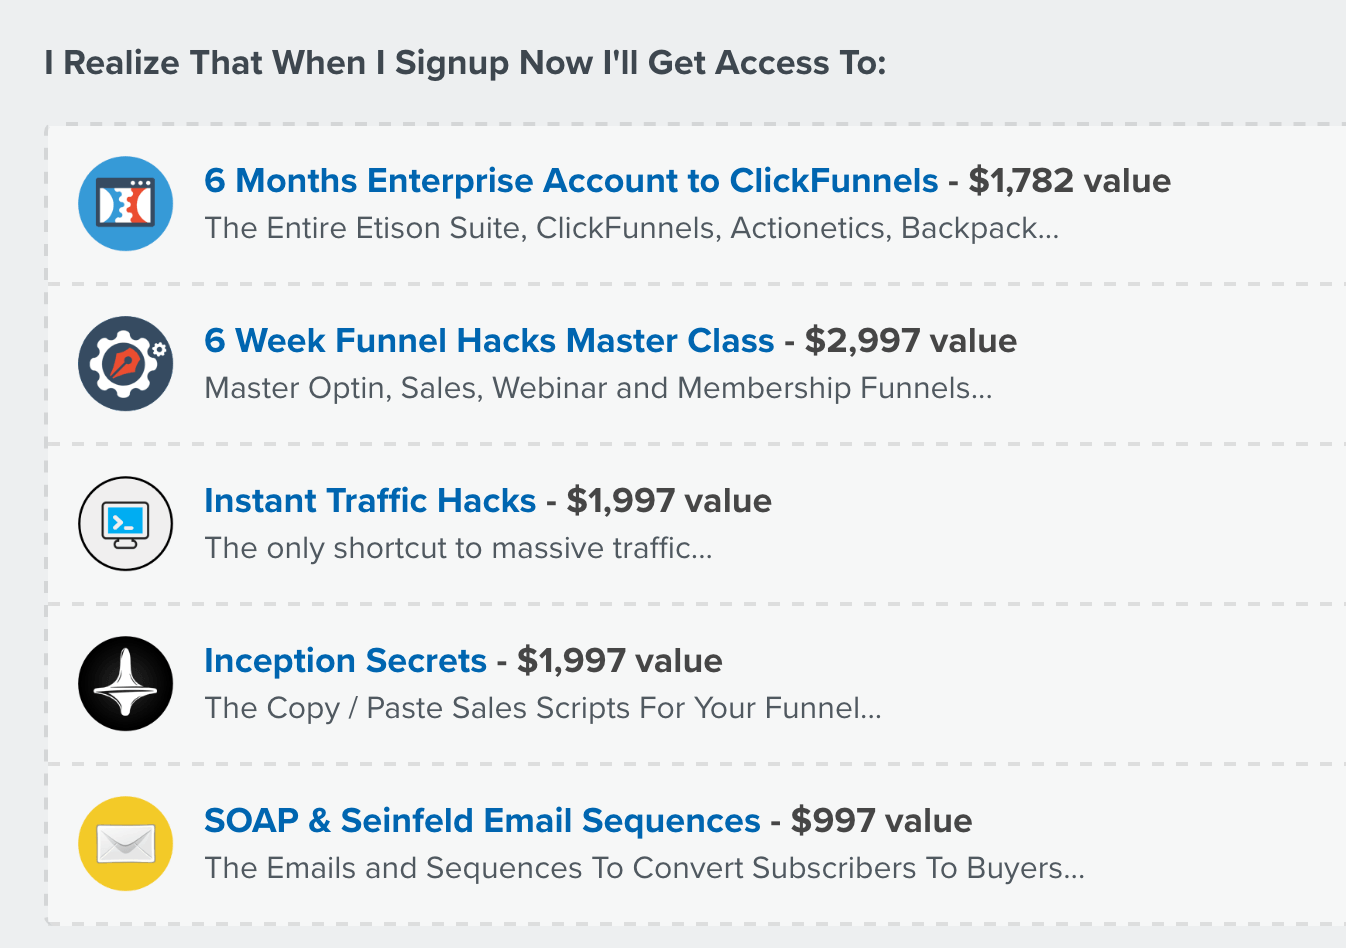 Clickfunnels For B2B